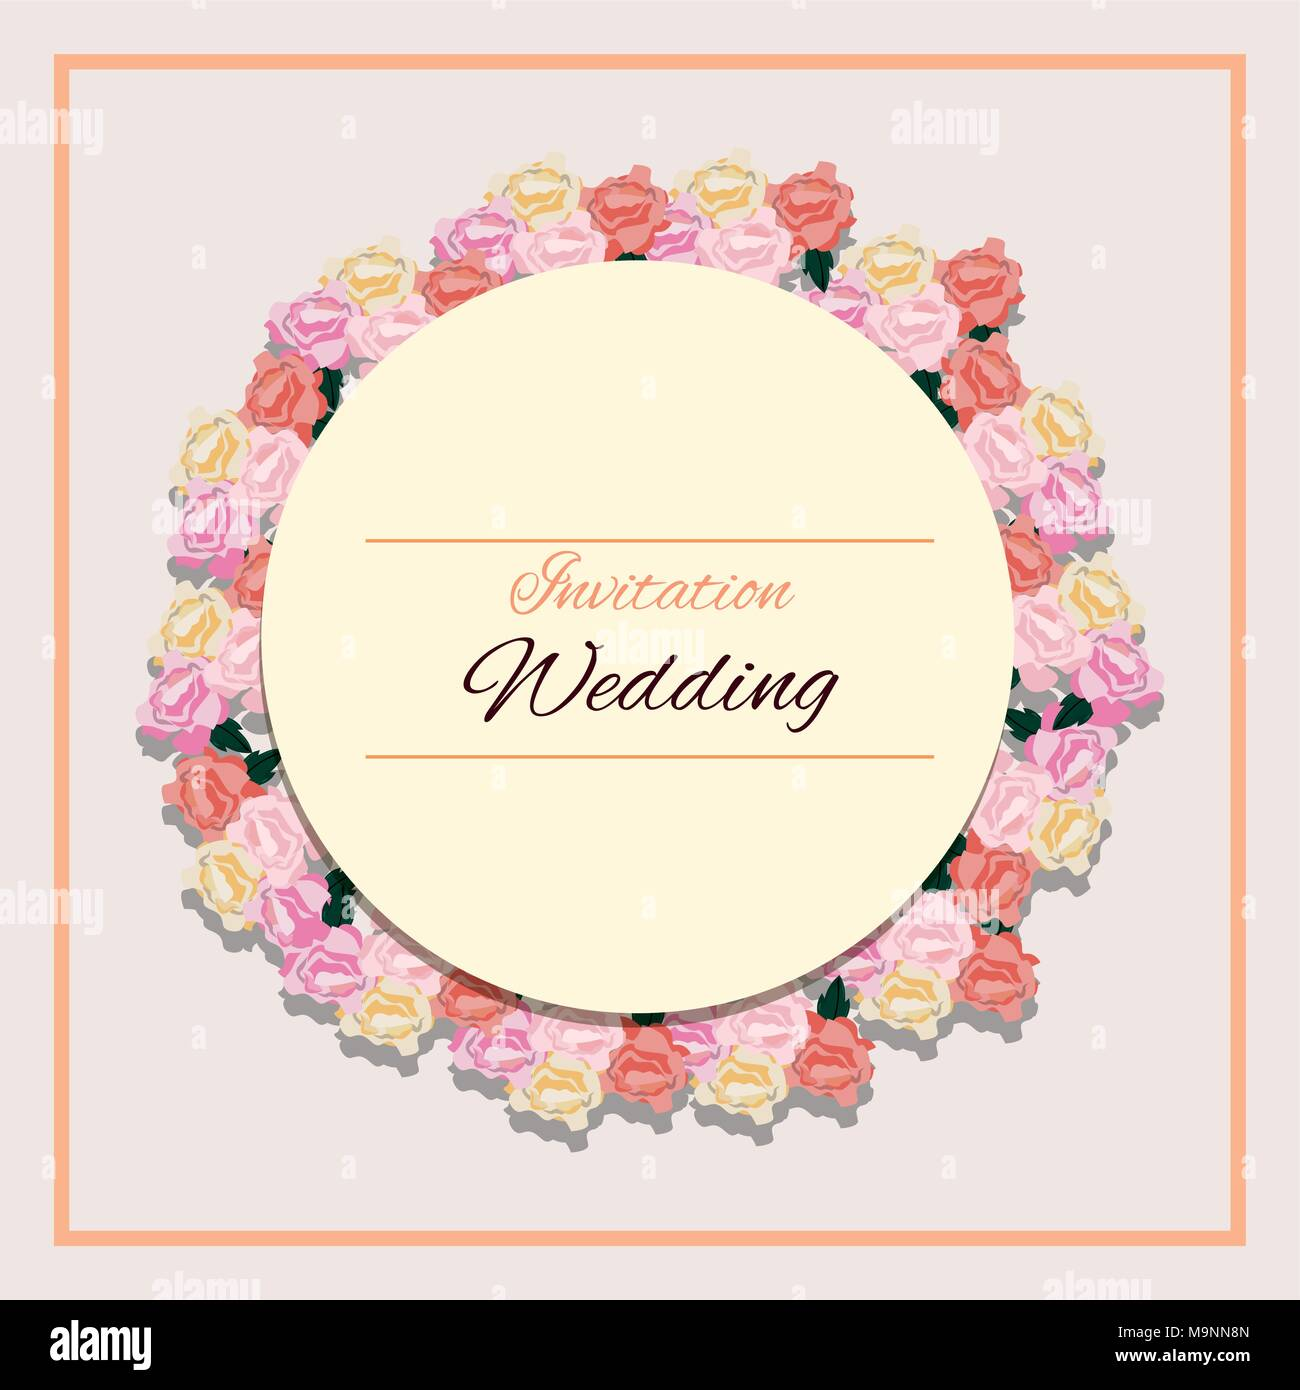 floral wedding invitation design with circular frame and beautiful ...